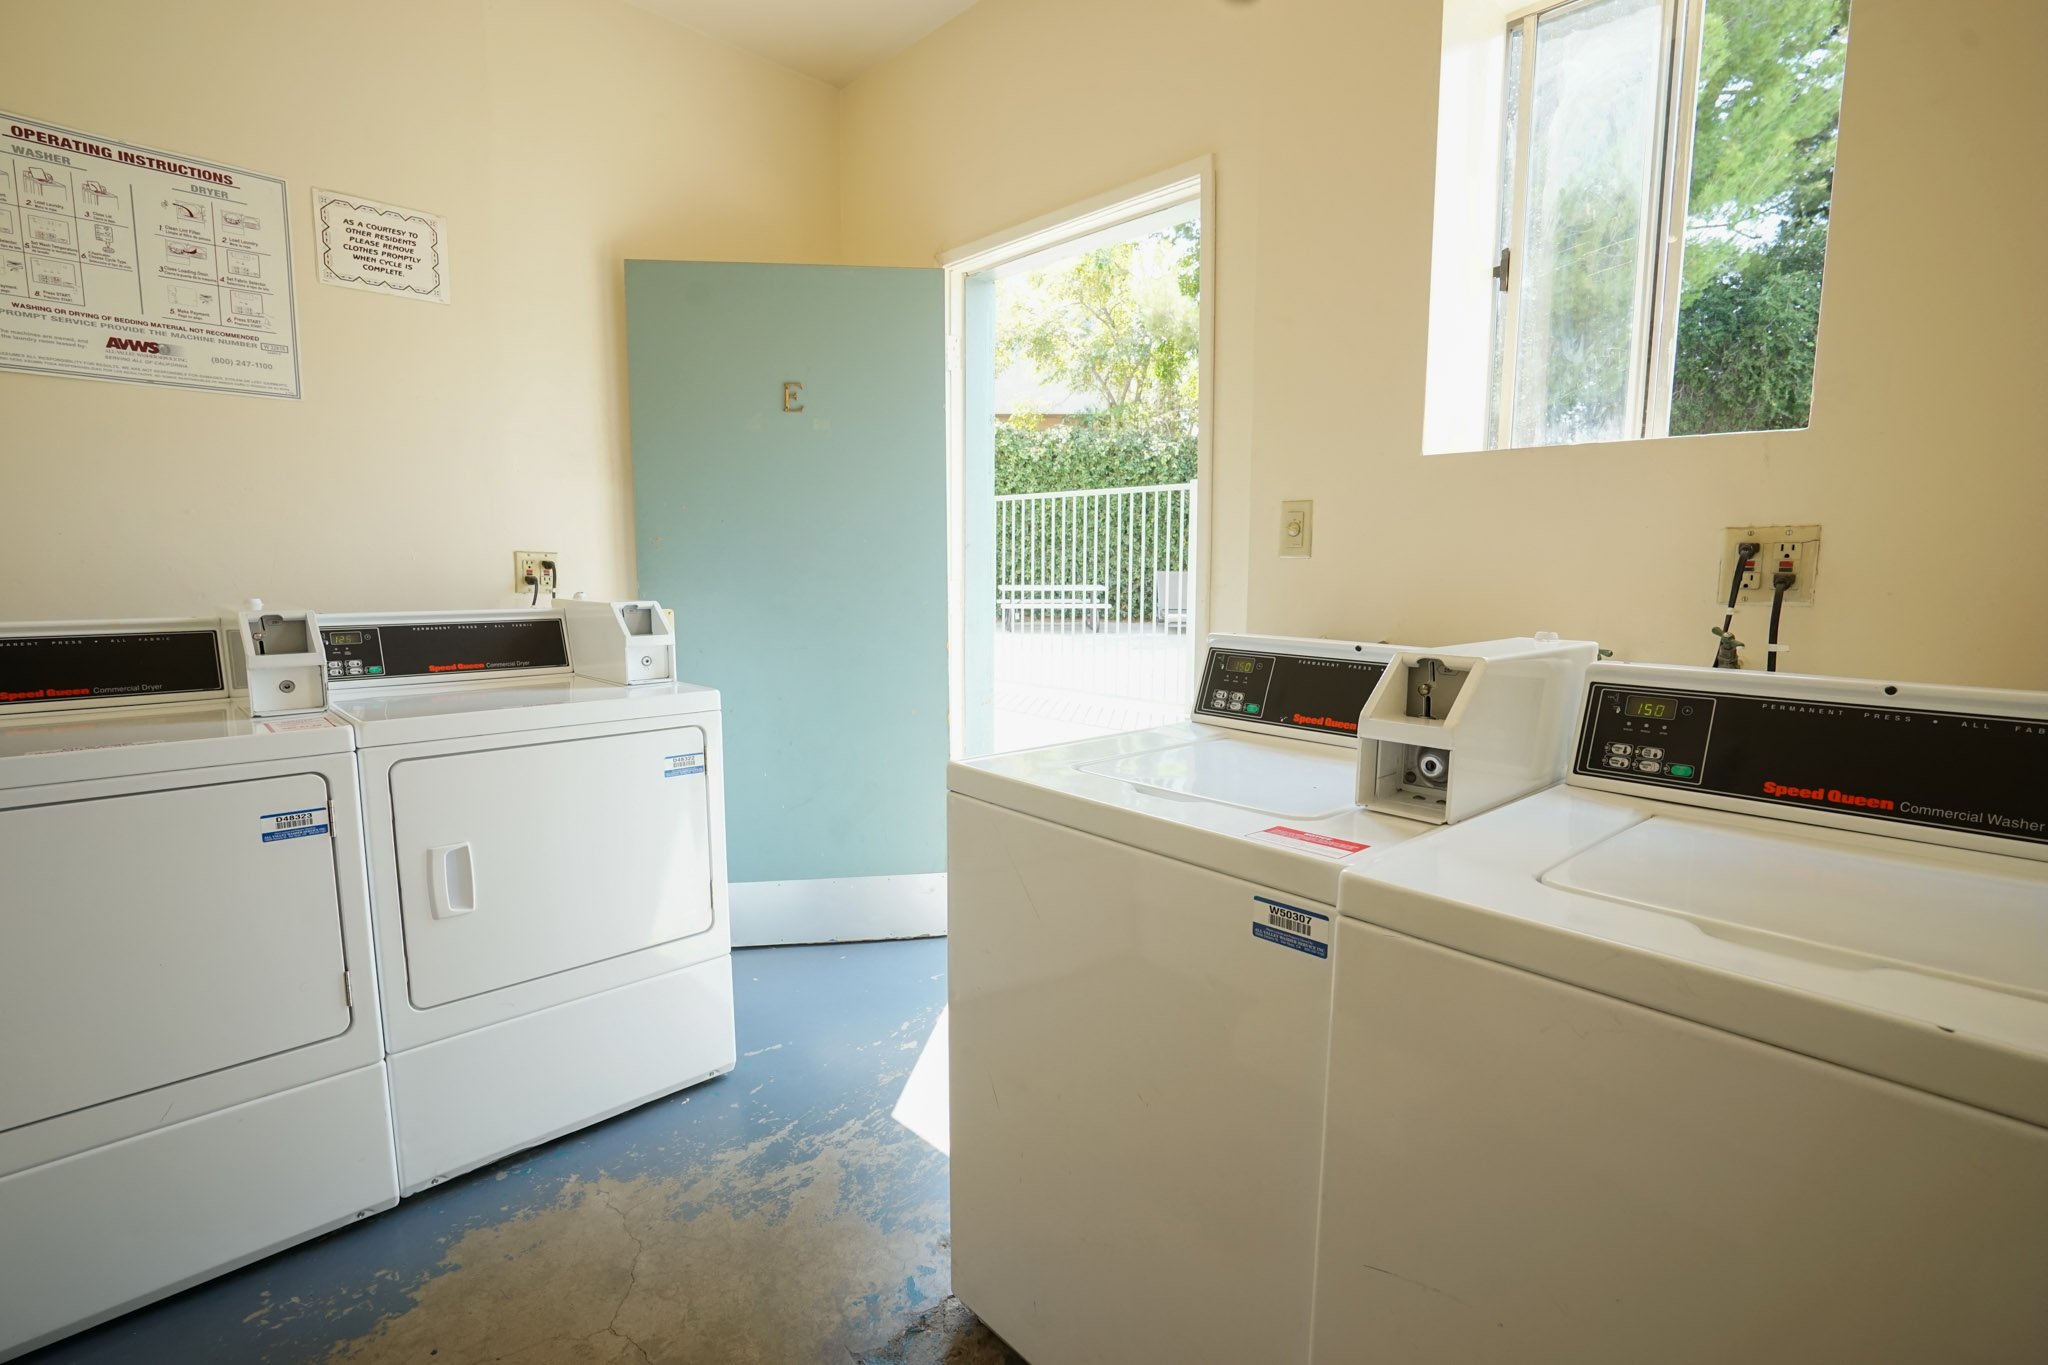 Laundry room with four machines visible. There is an operating instruction sign posted on the wall, and a sliding window.